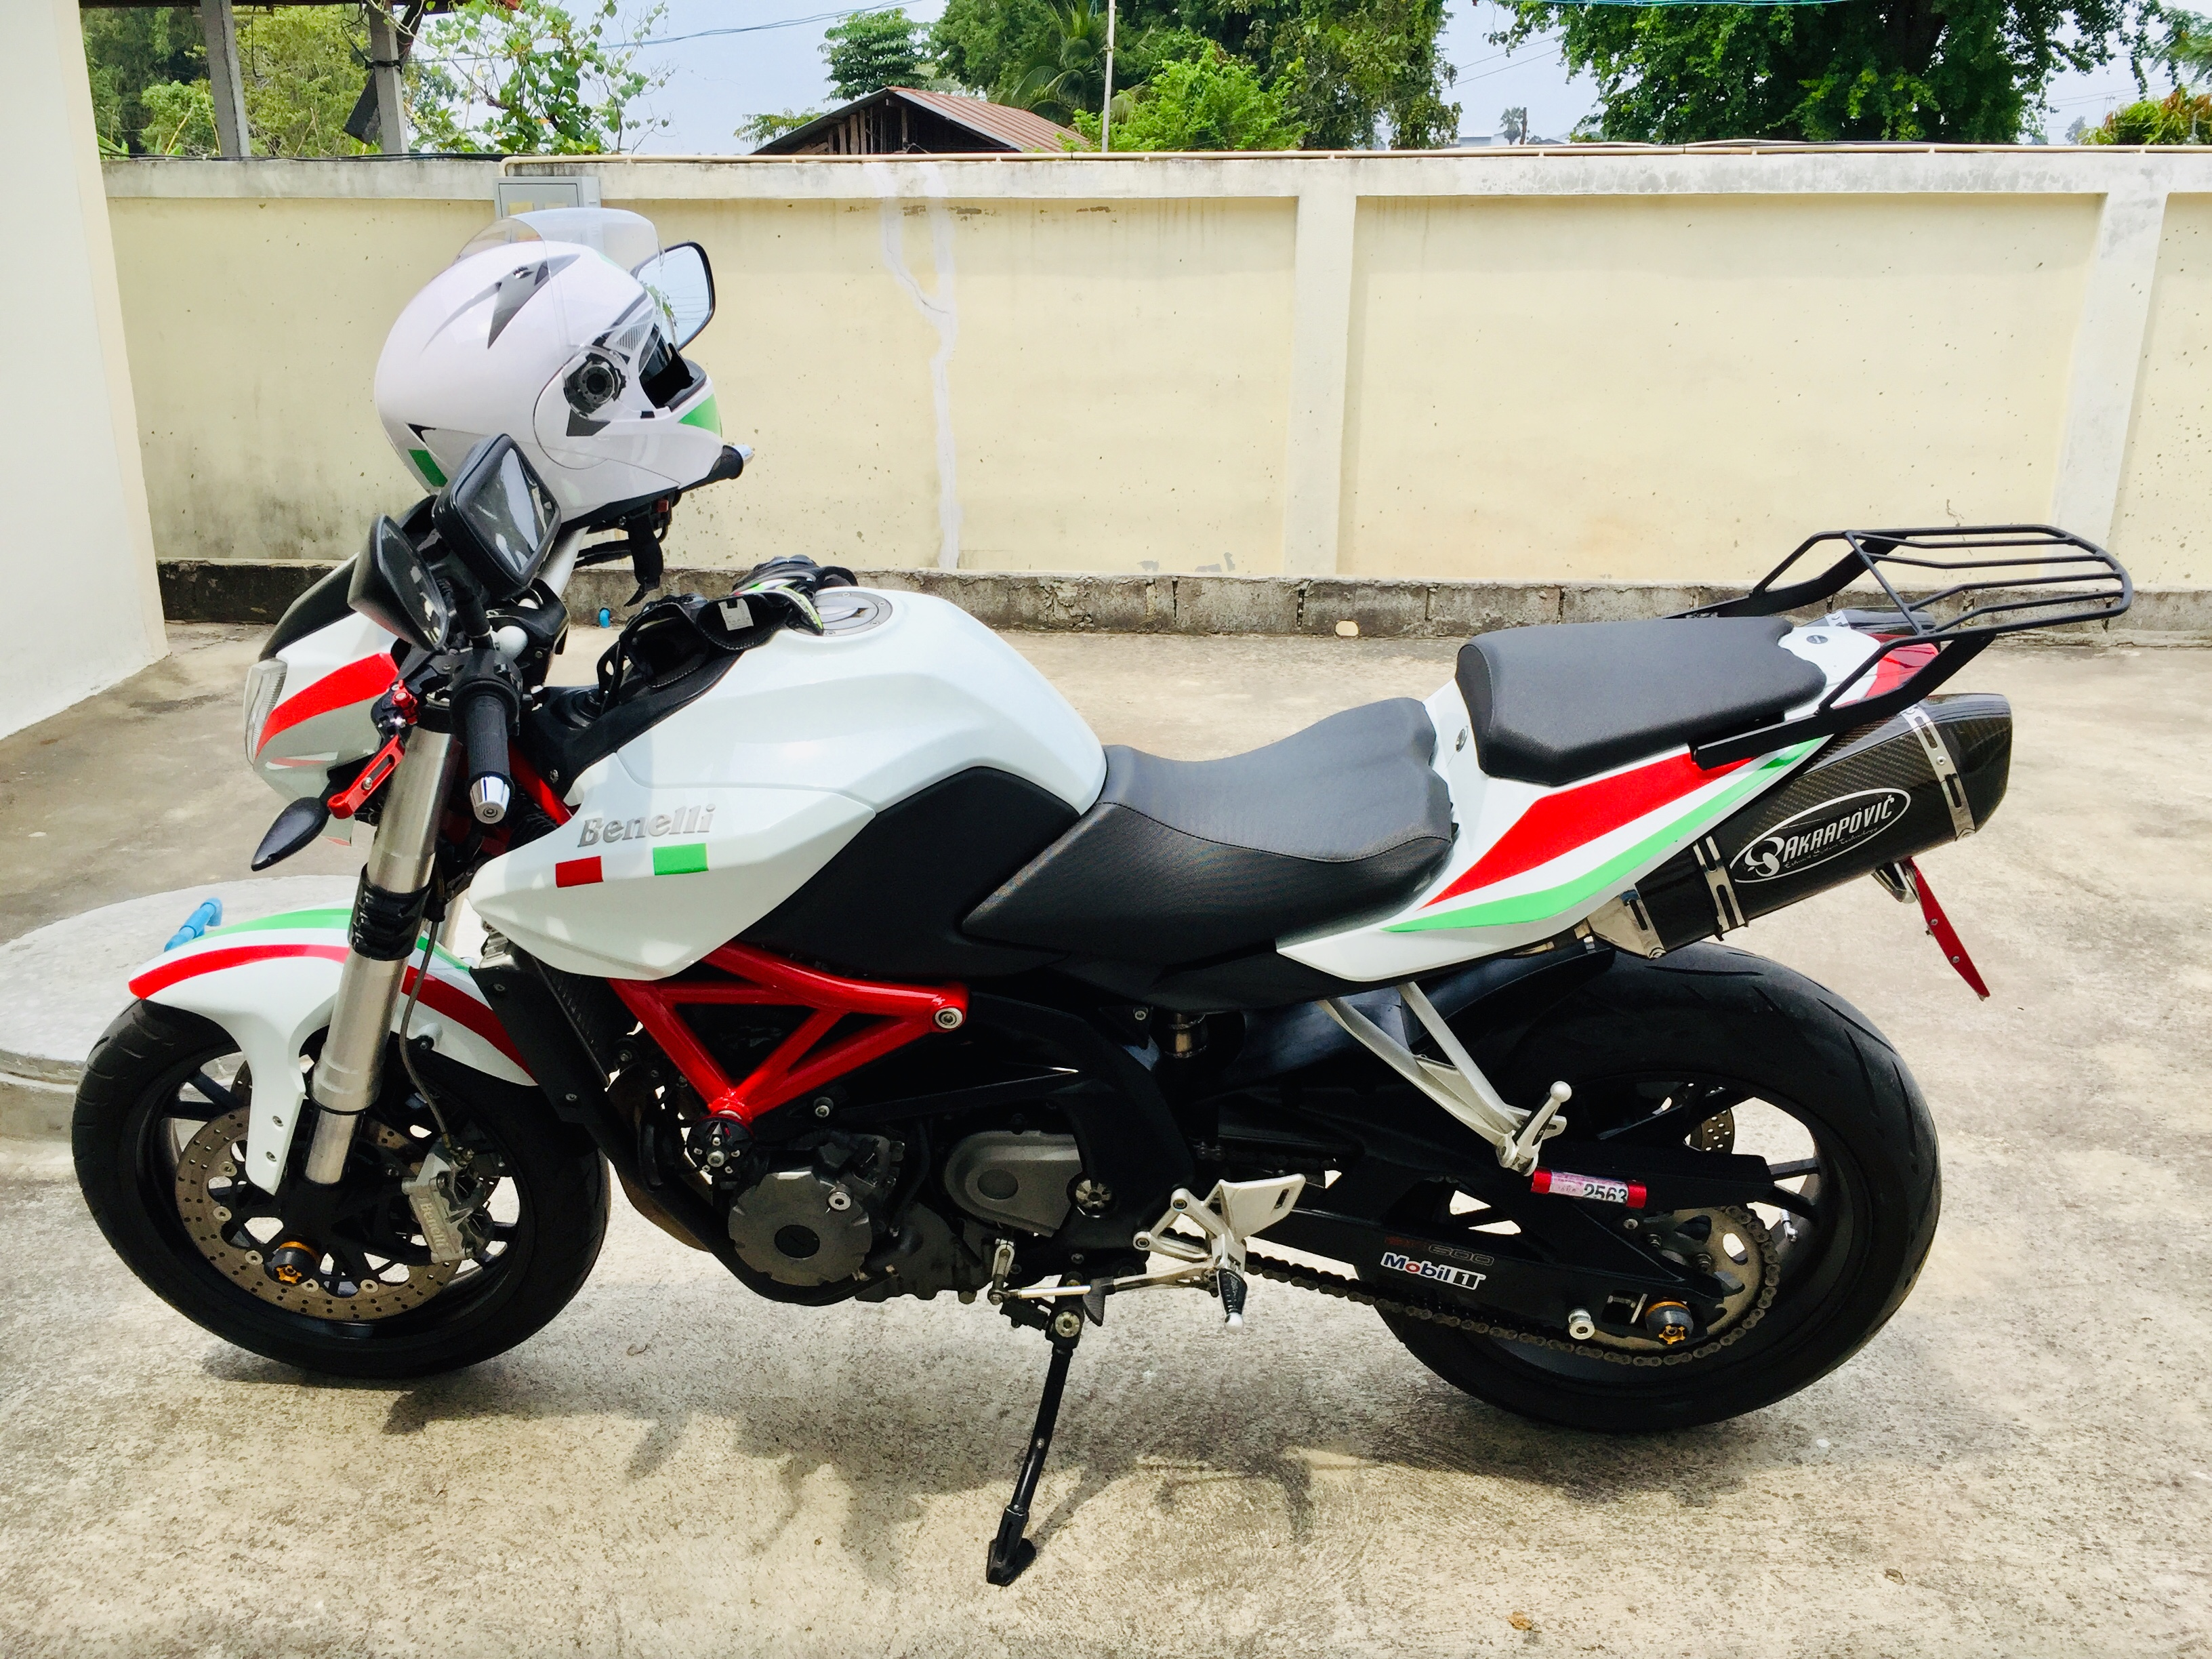 Wanted to buy a Honda CB650 but bought a Benelli bn600J instead.-25ecc023-1baa-4ac6-9603-523f7a57ccee.jpeg